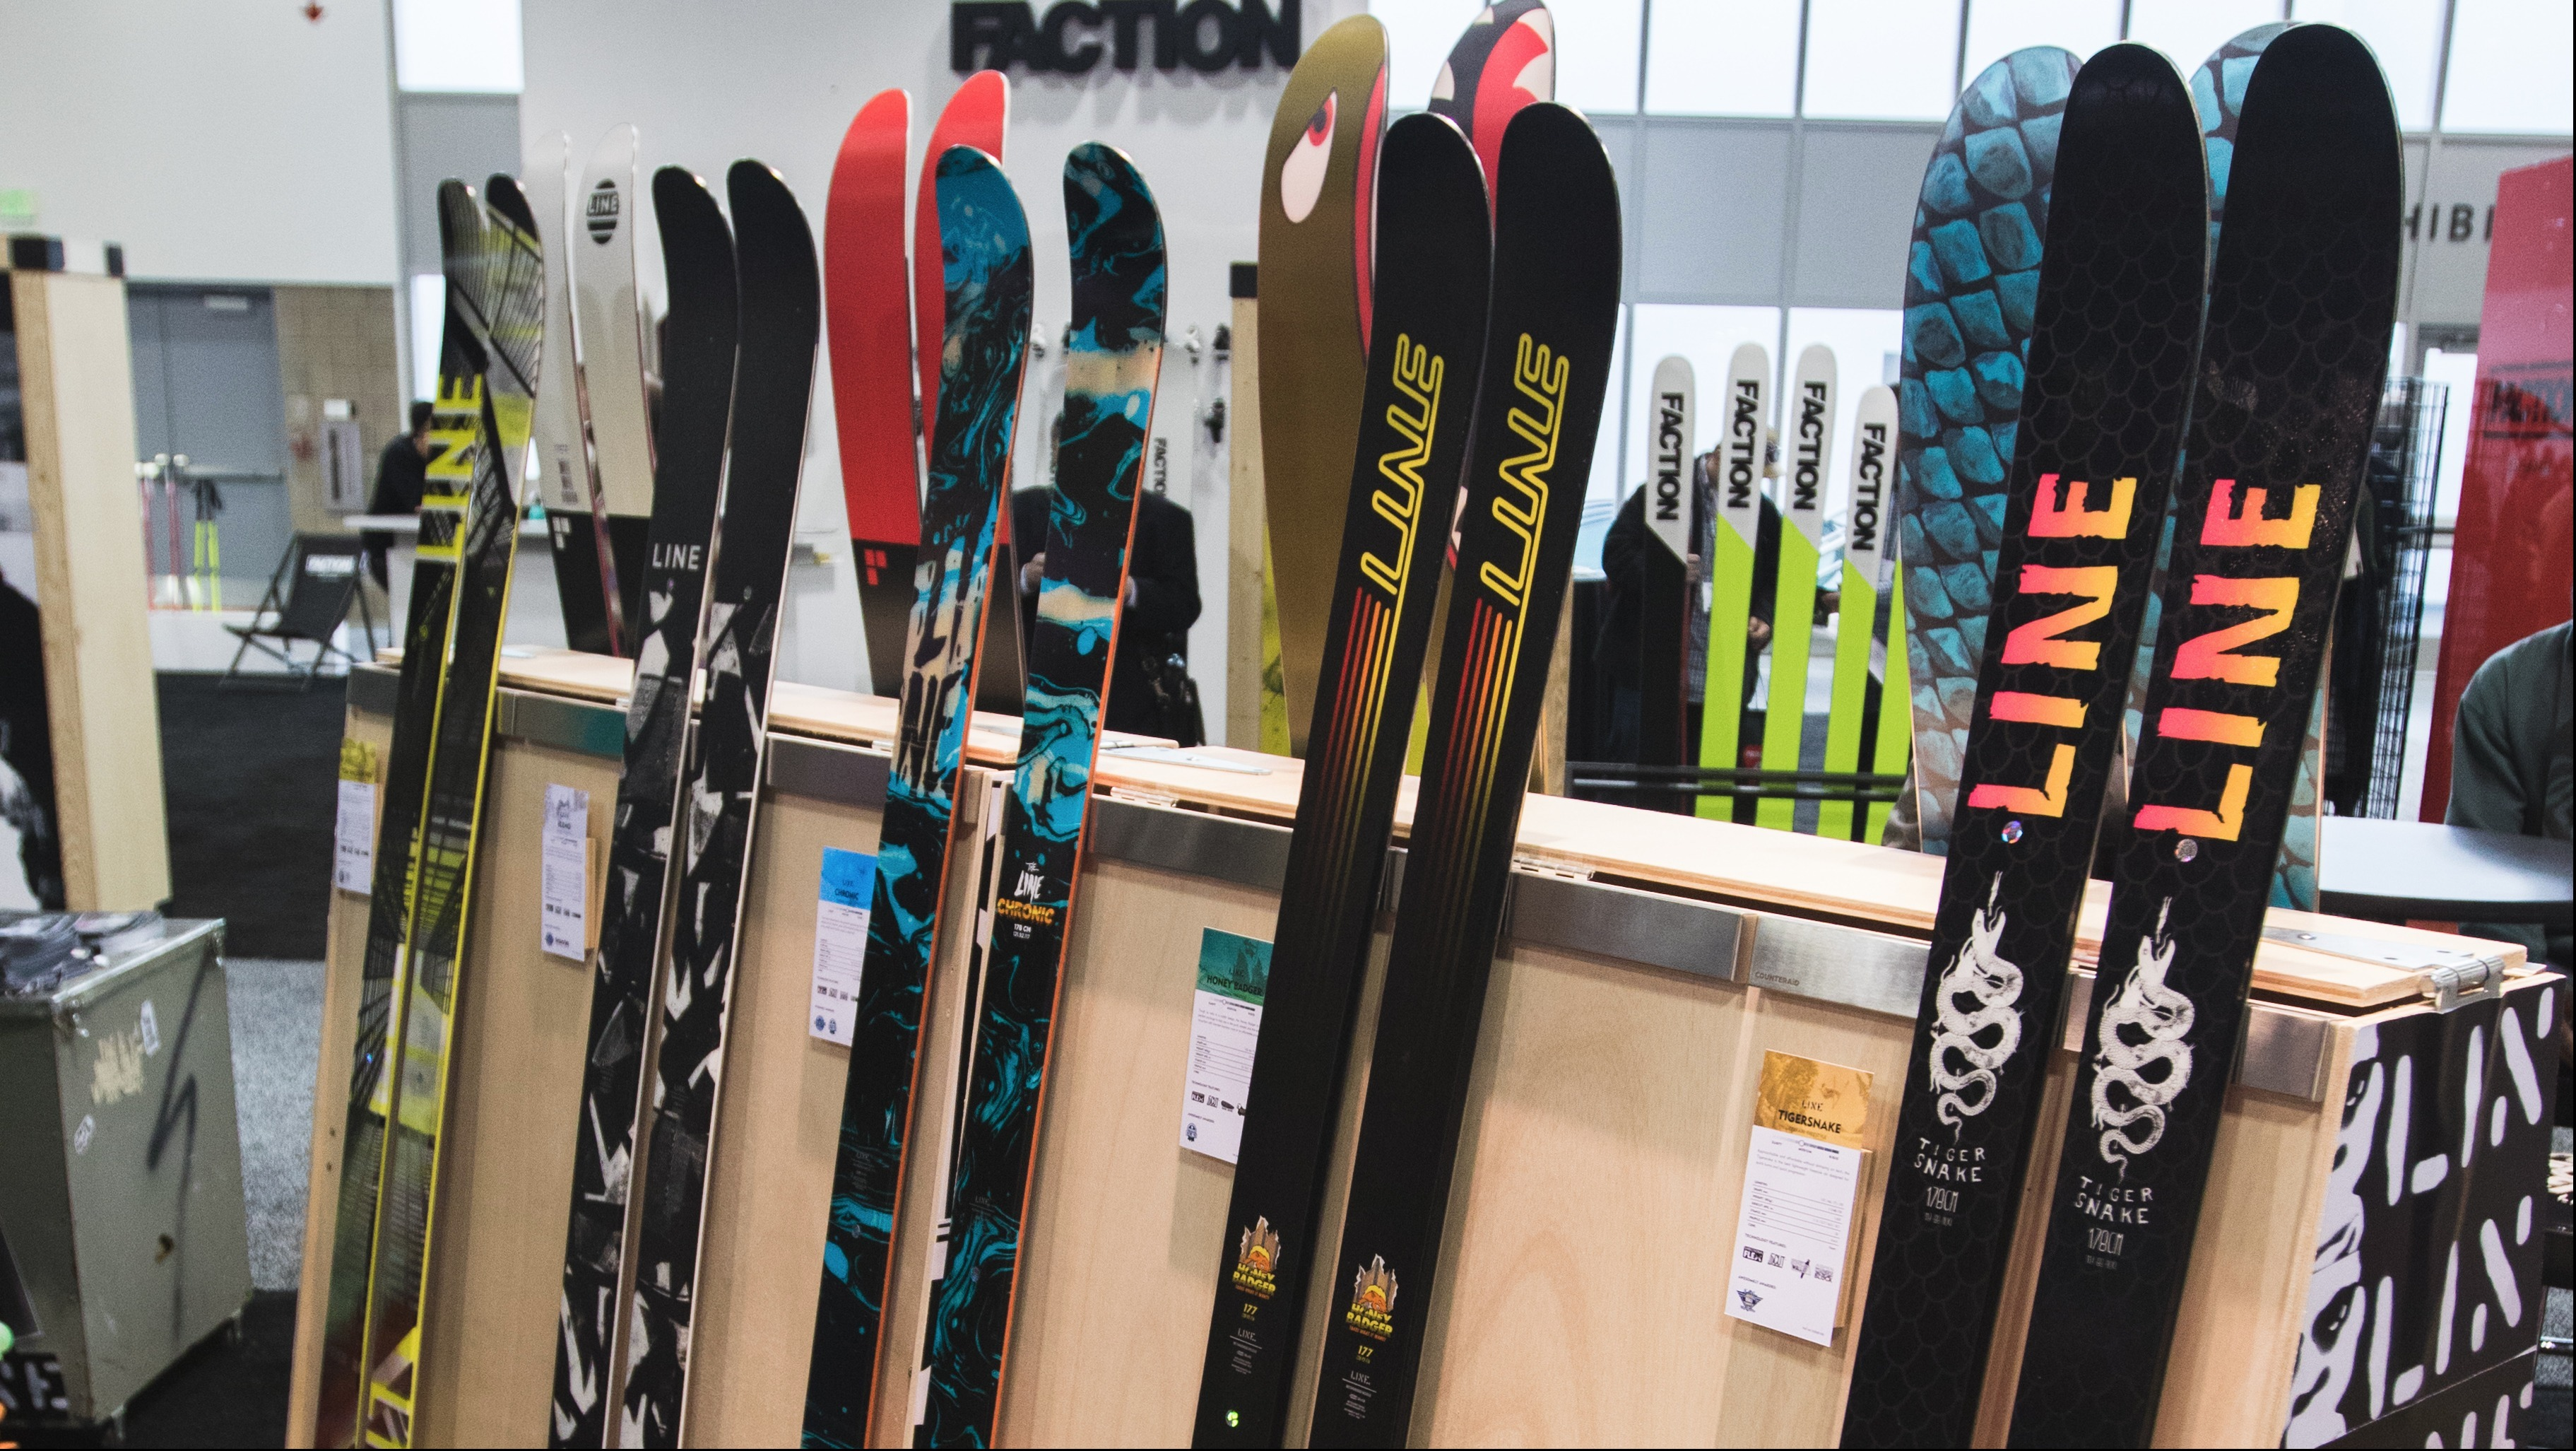 LINE Skis, Ski Poles, & Clothing | LINE Skis 2018-19